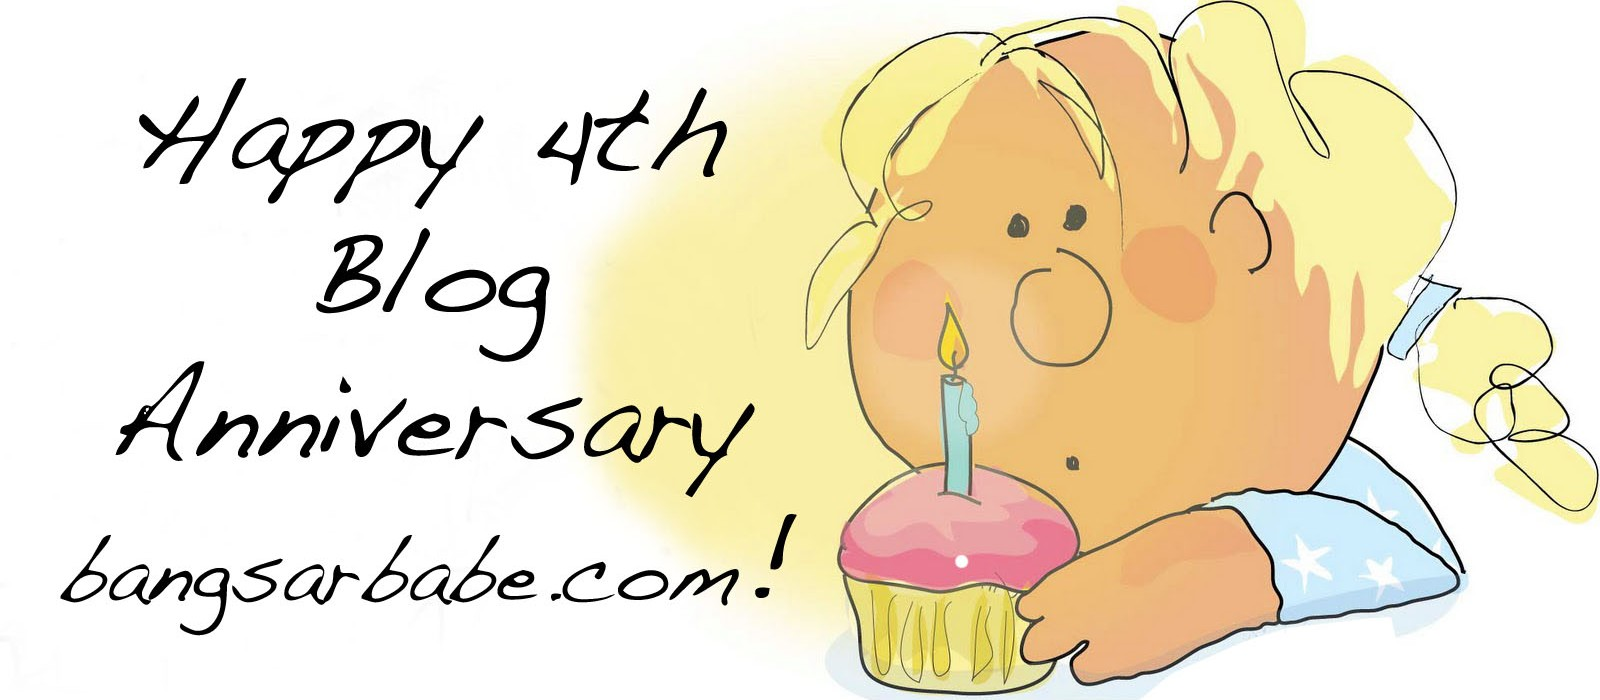 Bangsarbabe.com Turns 4!